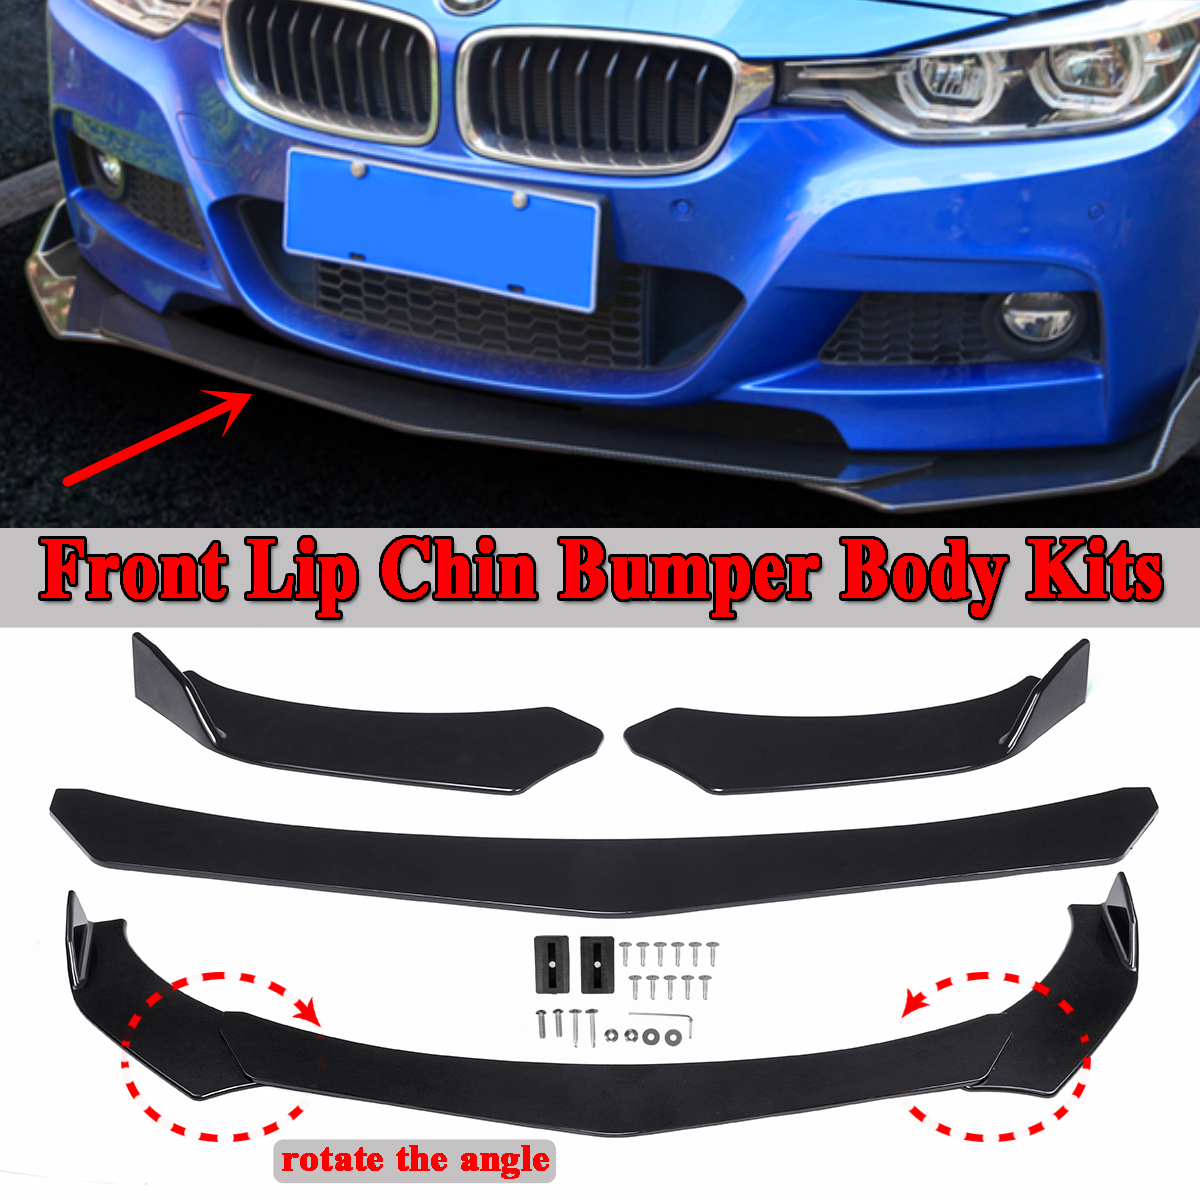 New 3pcs Car Universal Black Front <font><b>Bumper</b></font> Spoiler Lip Body Kits Rotate The Angle For BMW E36 E46 E60 E63 E64 E90 E91 <font><b>E92</b></font> E93 image